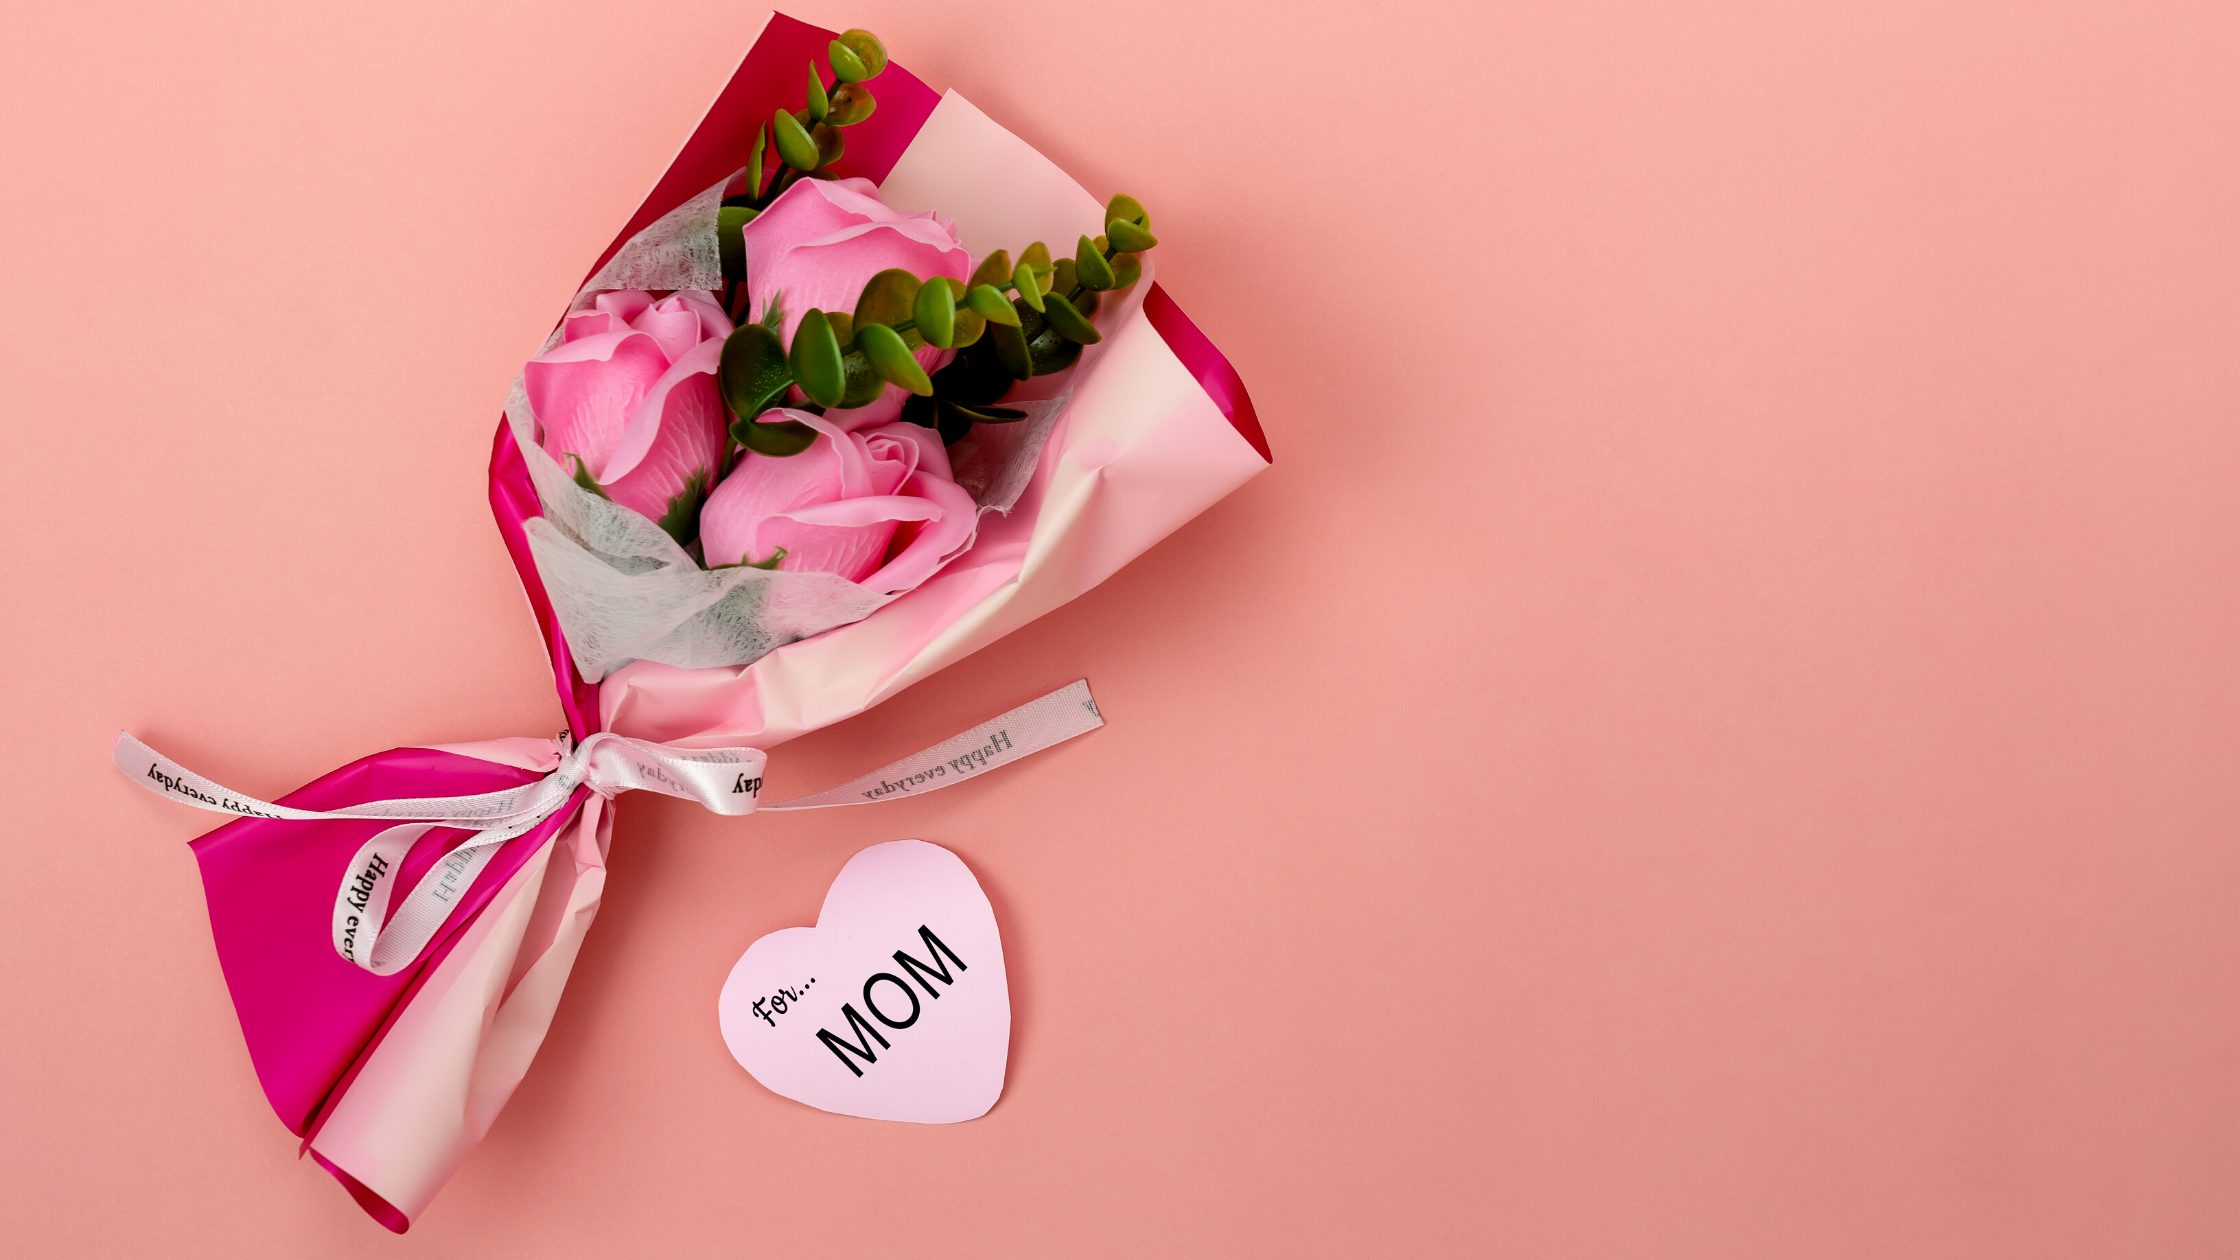 Top 10 mother's day gift ideas 2021